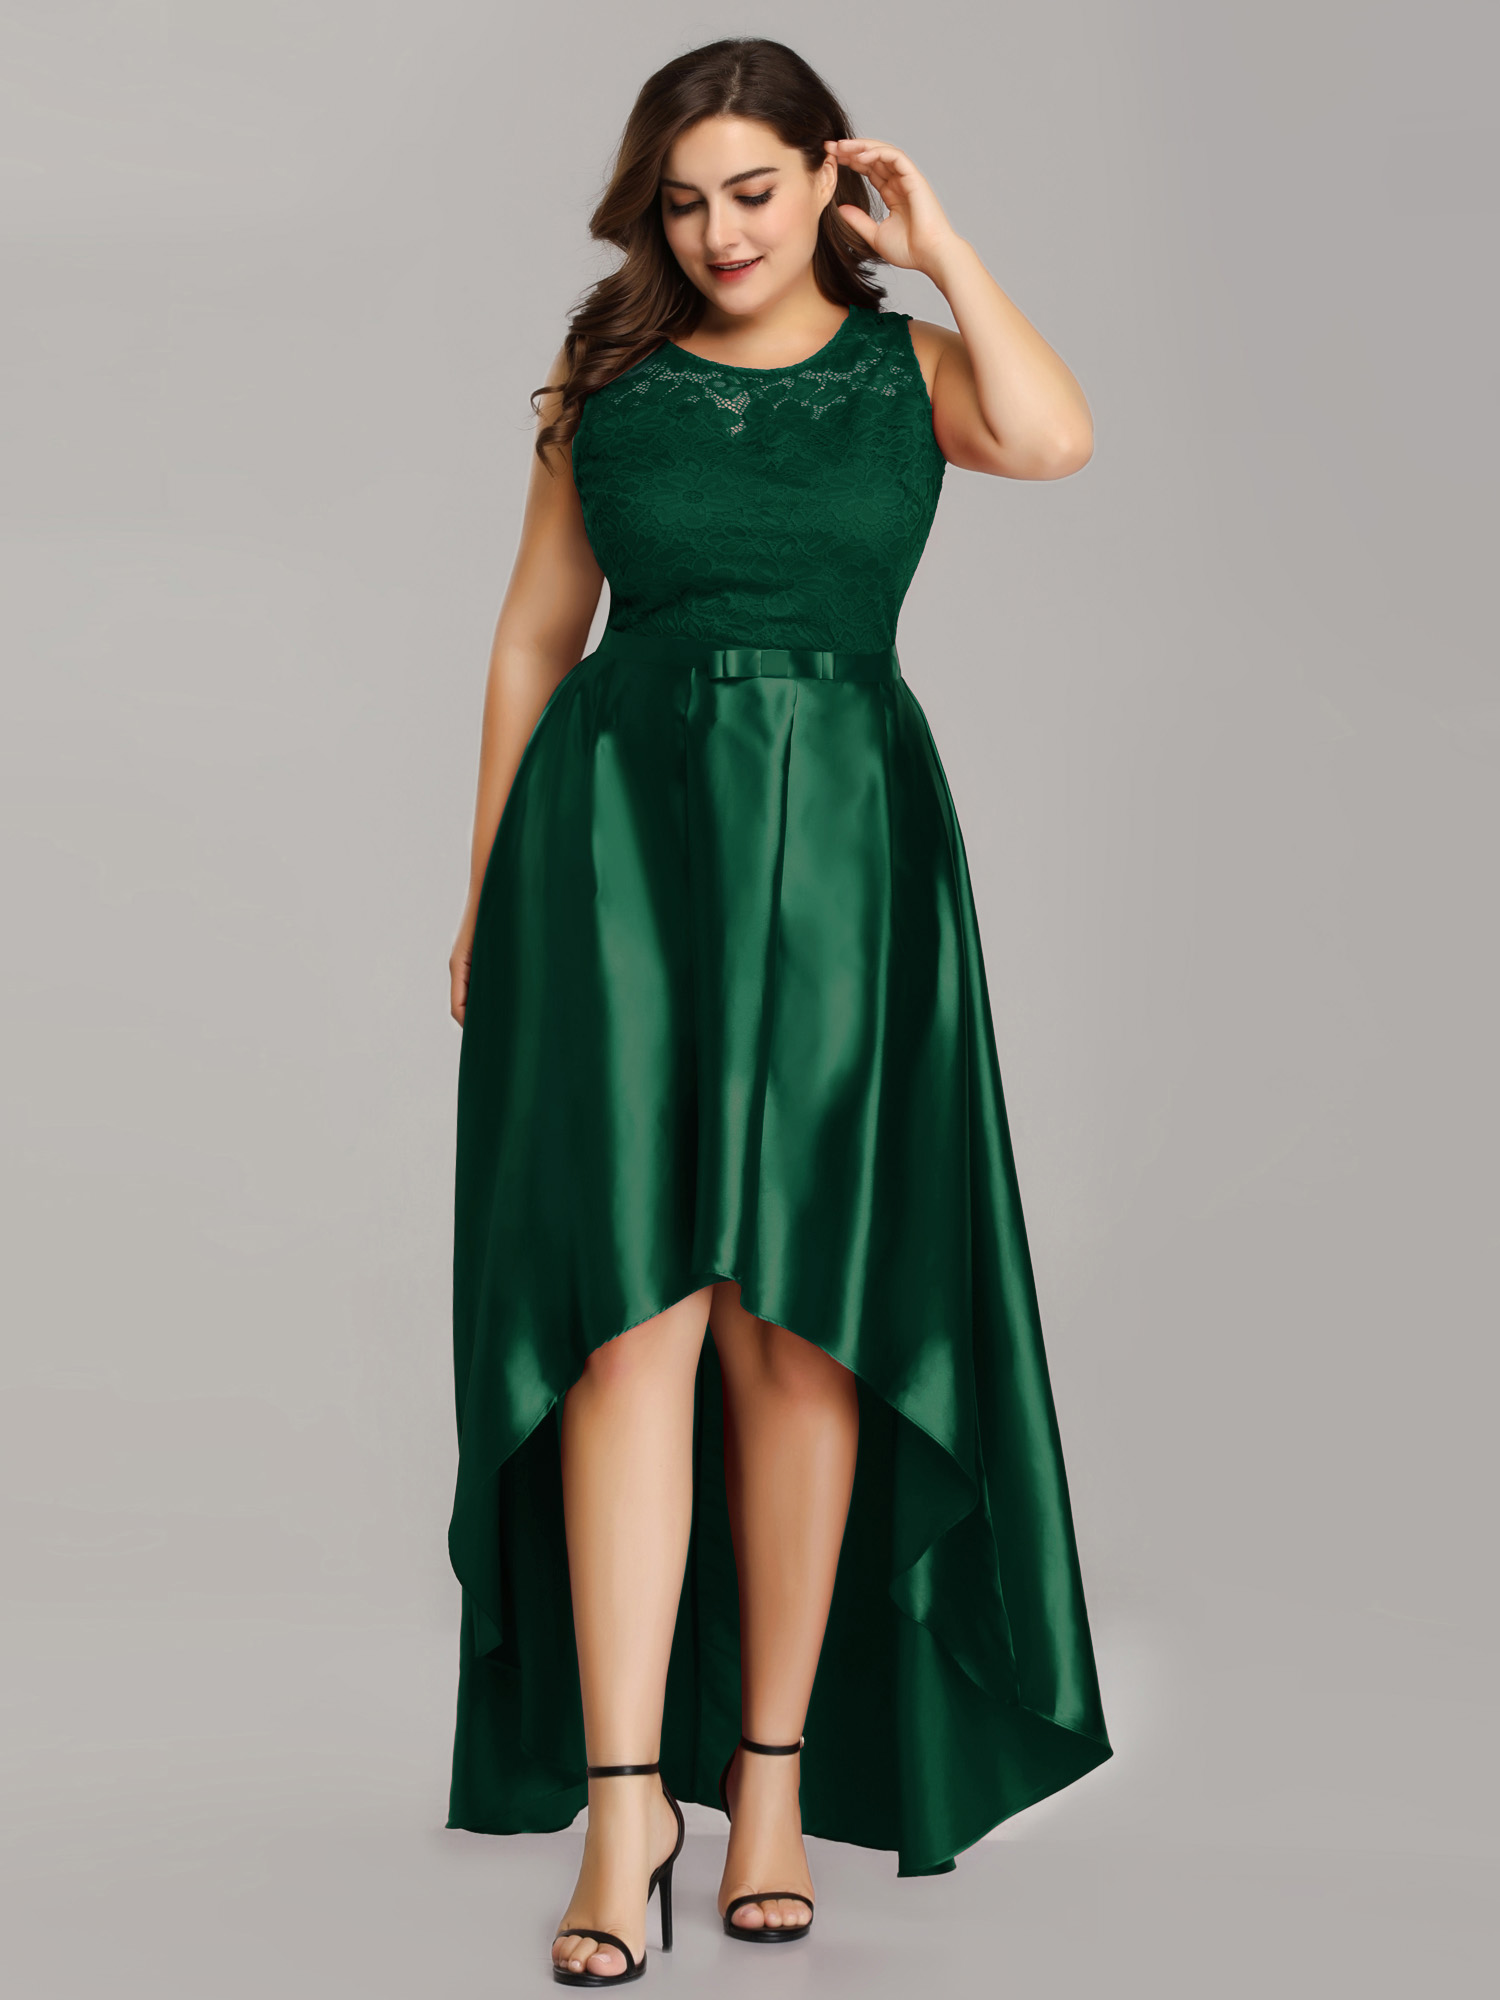 Ever-Pretty Women\'s Sleeveless Satin Plus Size High Low Party Wedding Guest  Evening Party Dresses for Women 07702 US 26